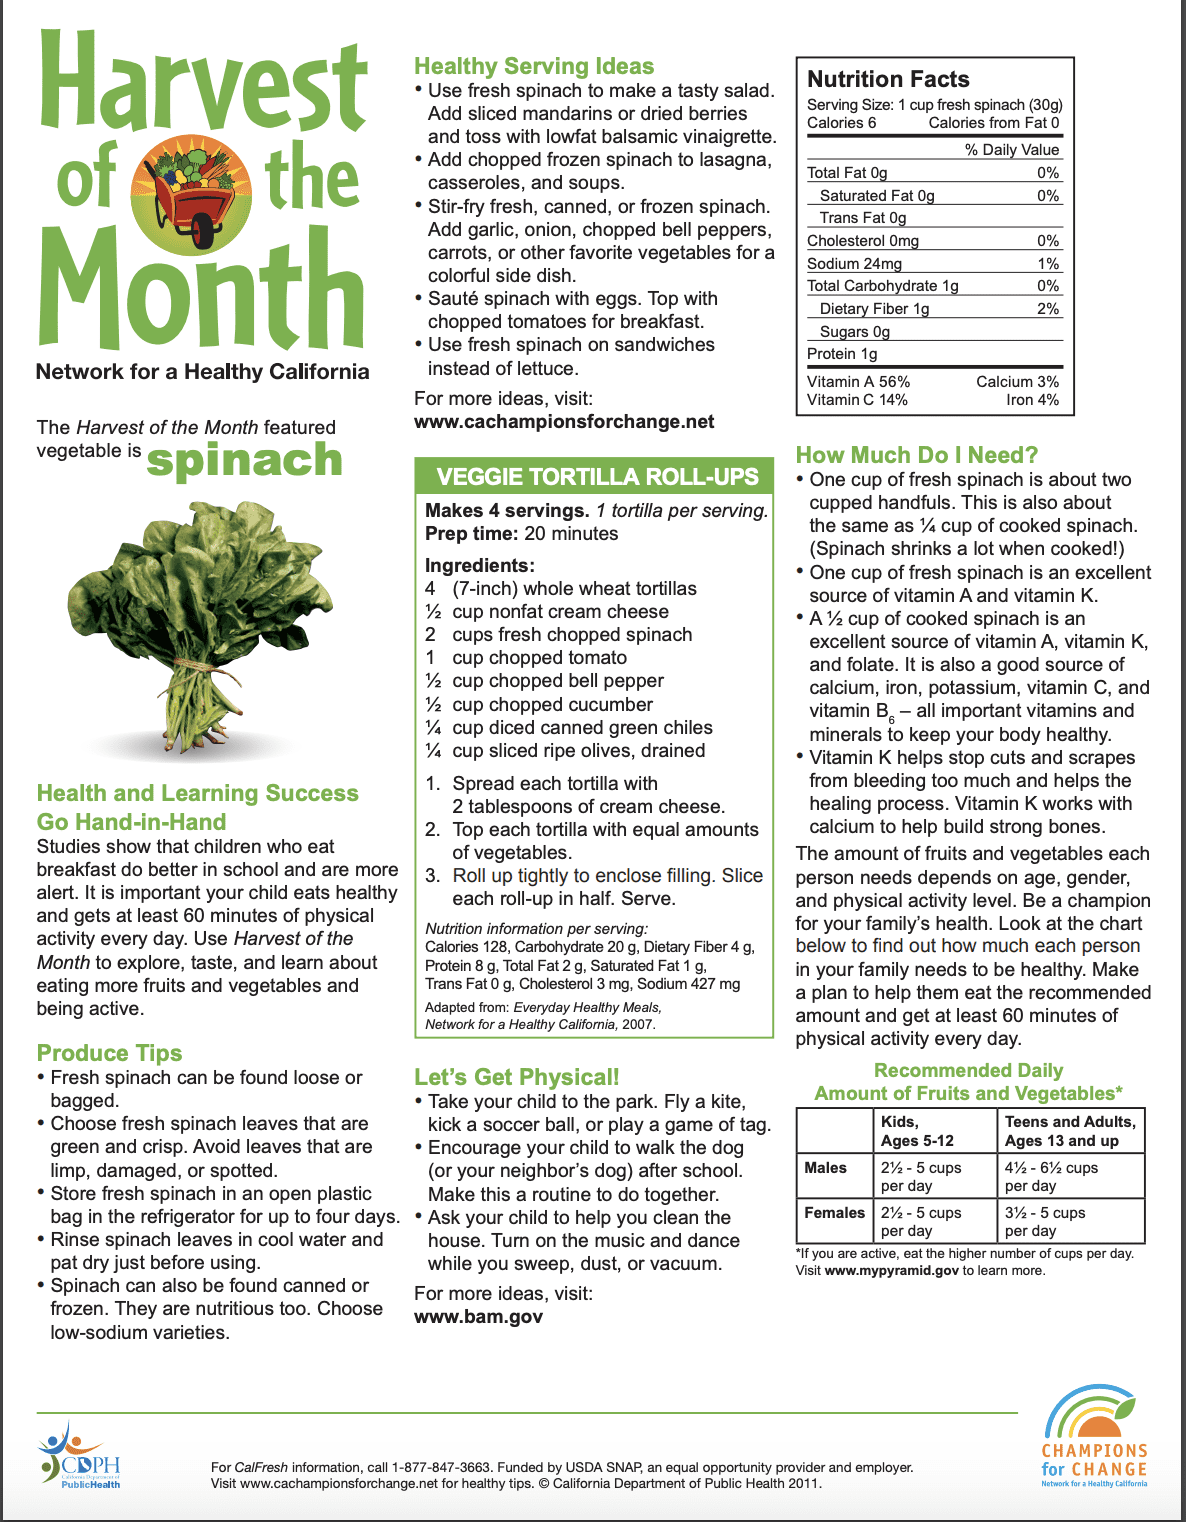 Harvest of the Month - Spinach